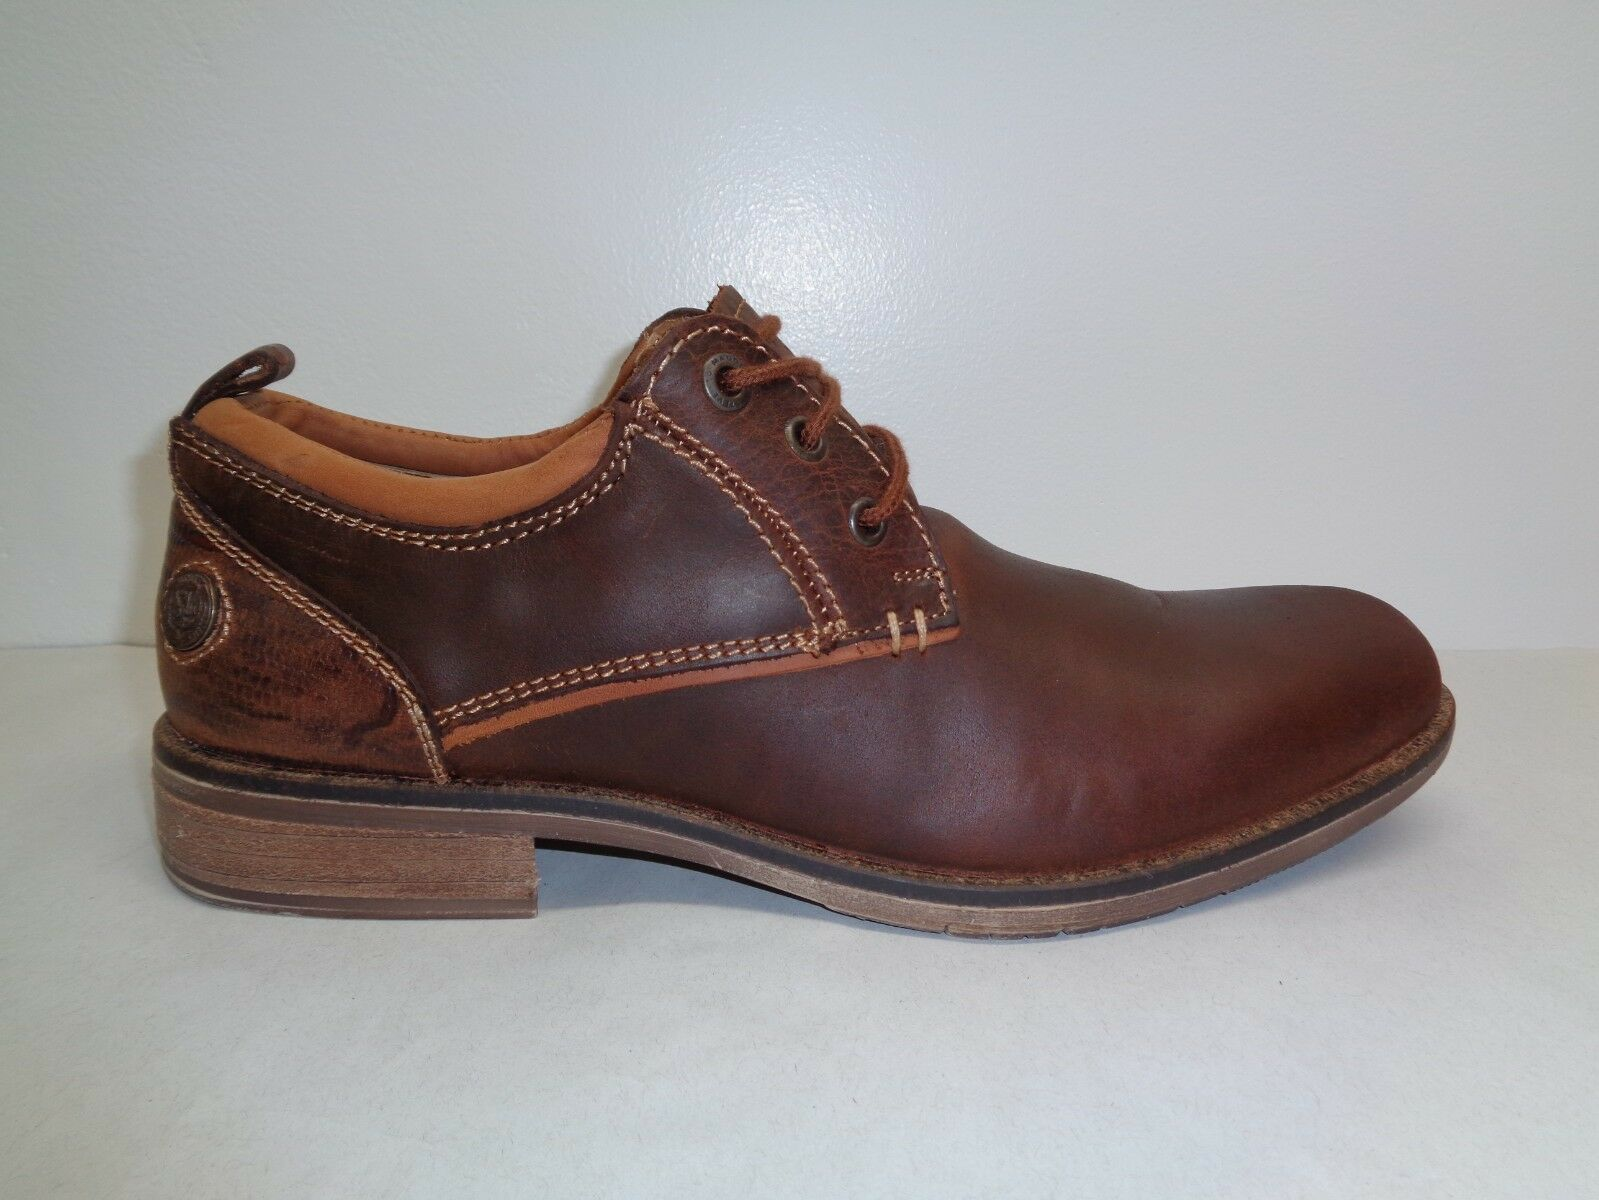 Steve Madden Size 9 M NARRATE Tan Brown Leather Lace Up Oxfords New Uomo Shoes